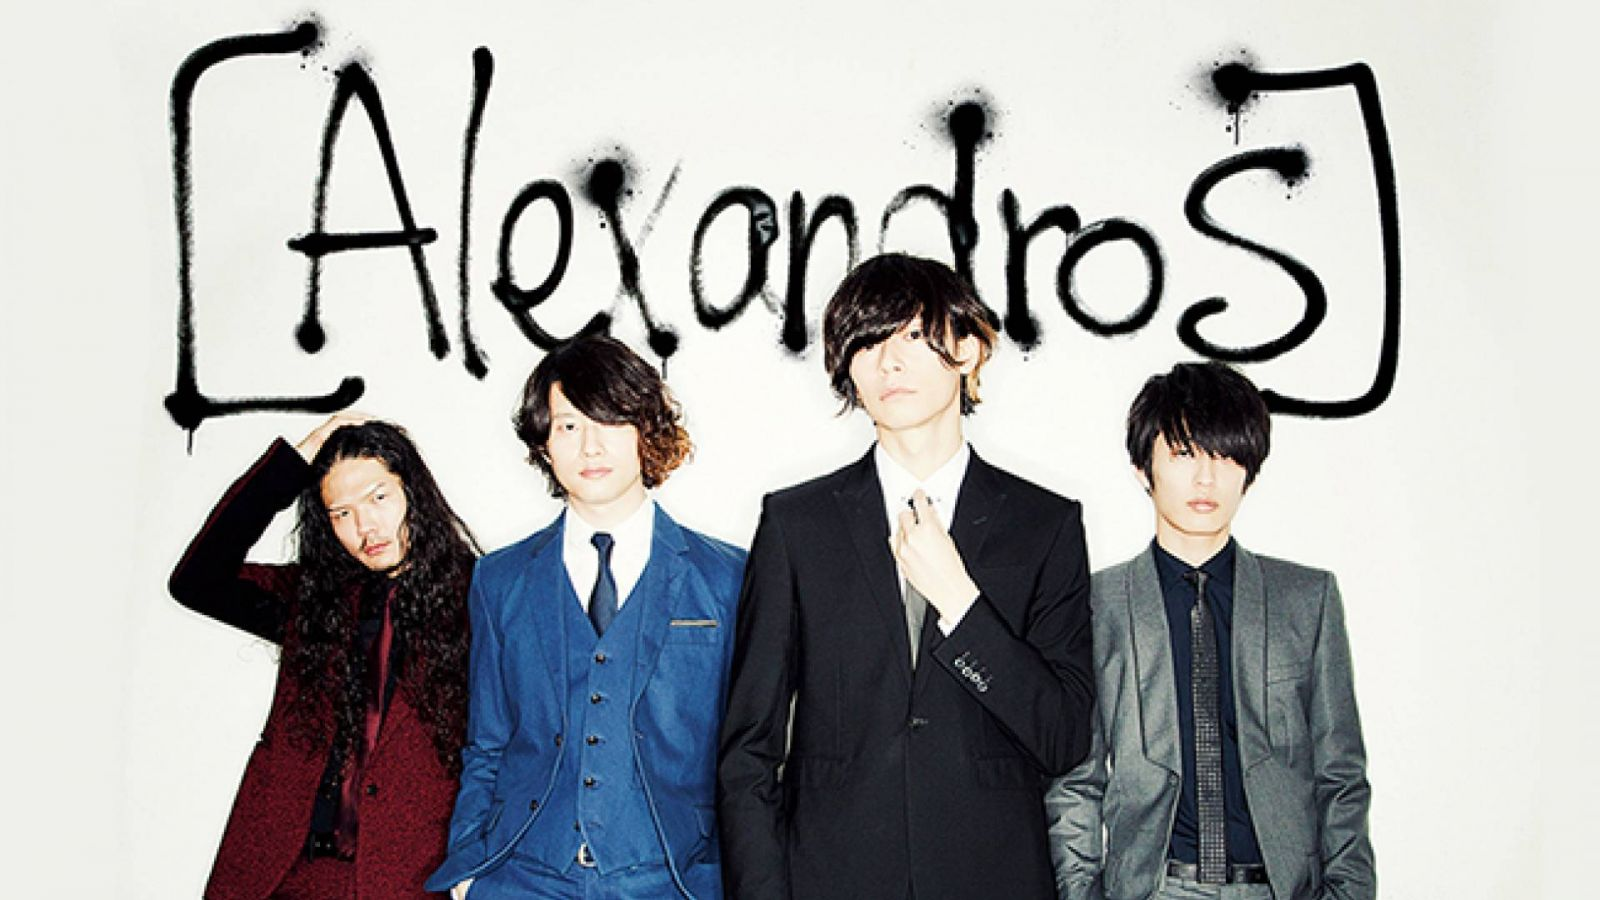 New Album from [Alexandros] © [Alexandros], All Rights Reserved